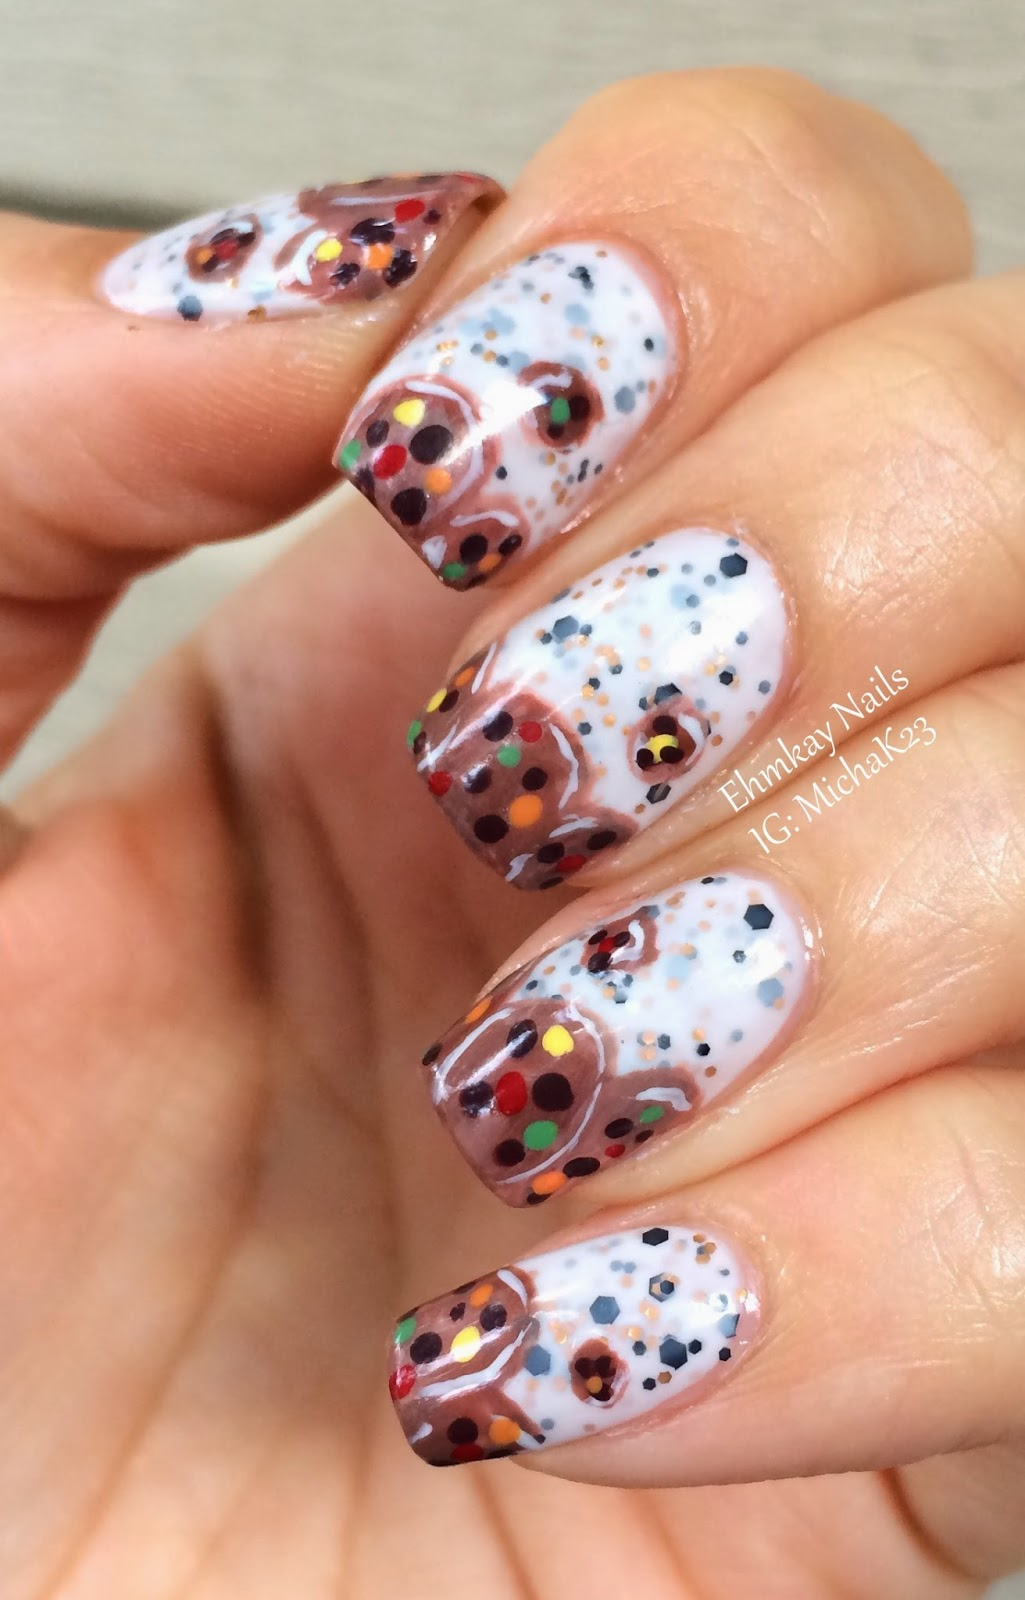 ehmkay nails model city polish cookies milk with cookie nail art. Black Bedroom Furniture Sets. Home Design Ideas